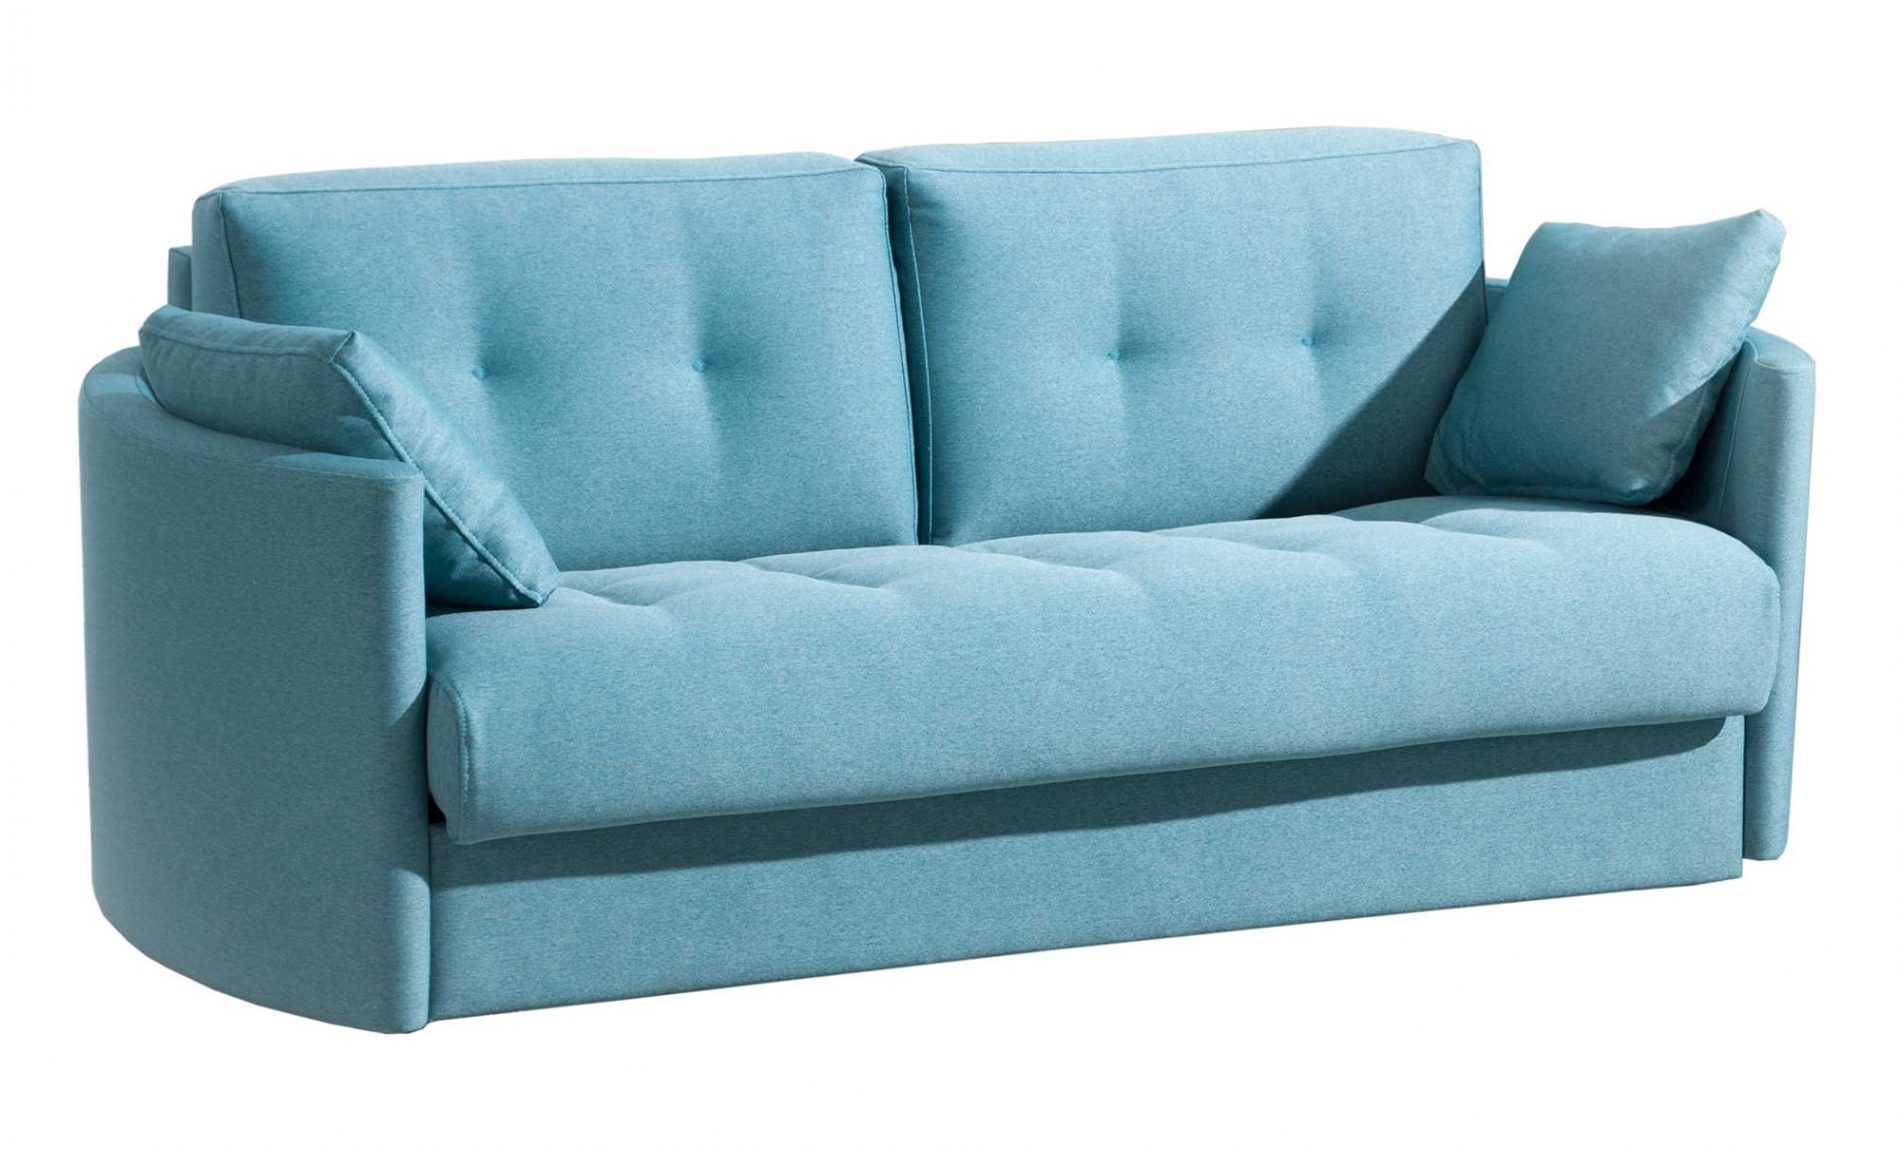 10 Most Popular Sofa Beds for 2020